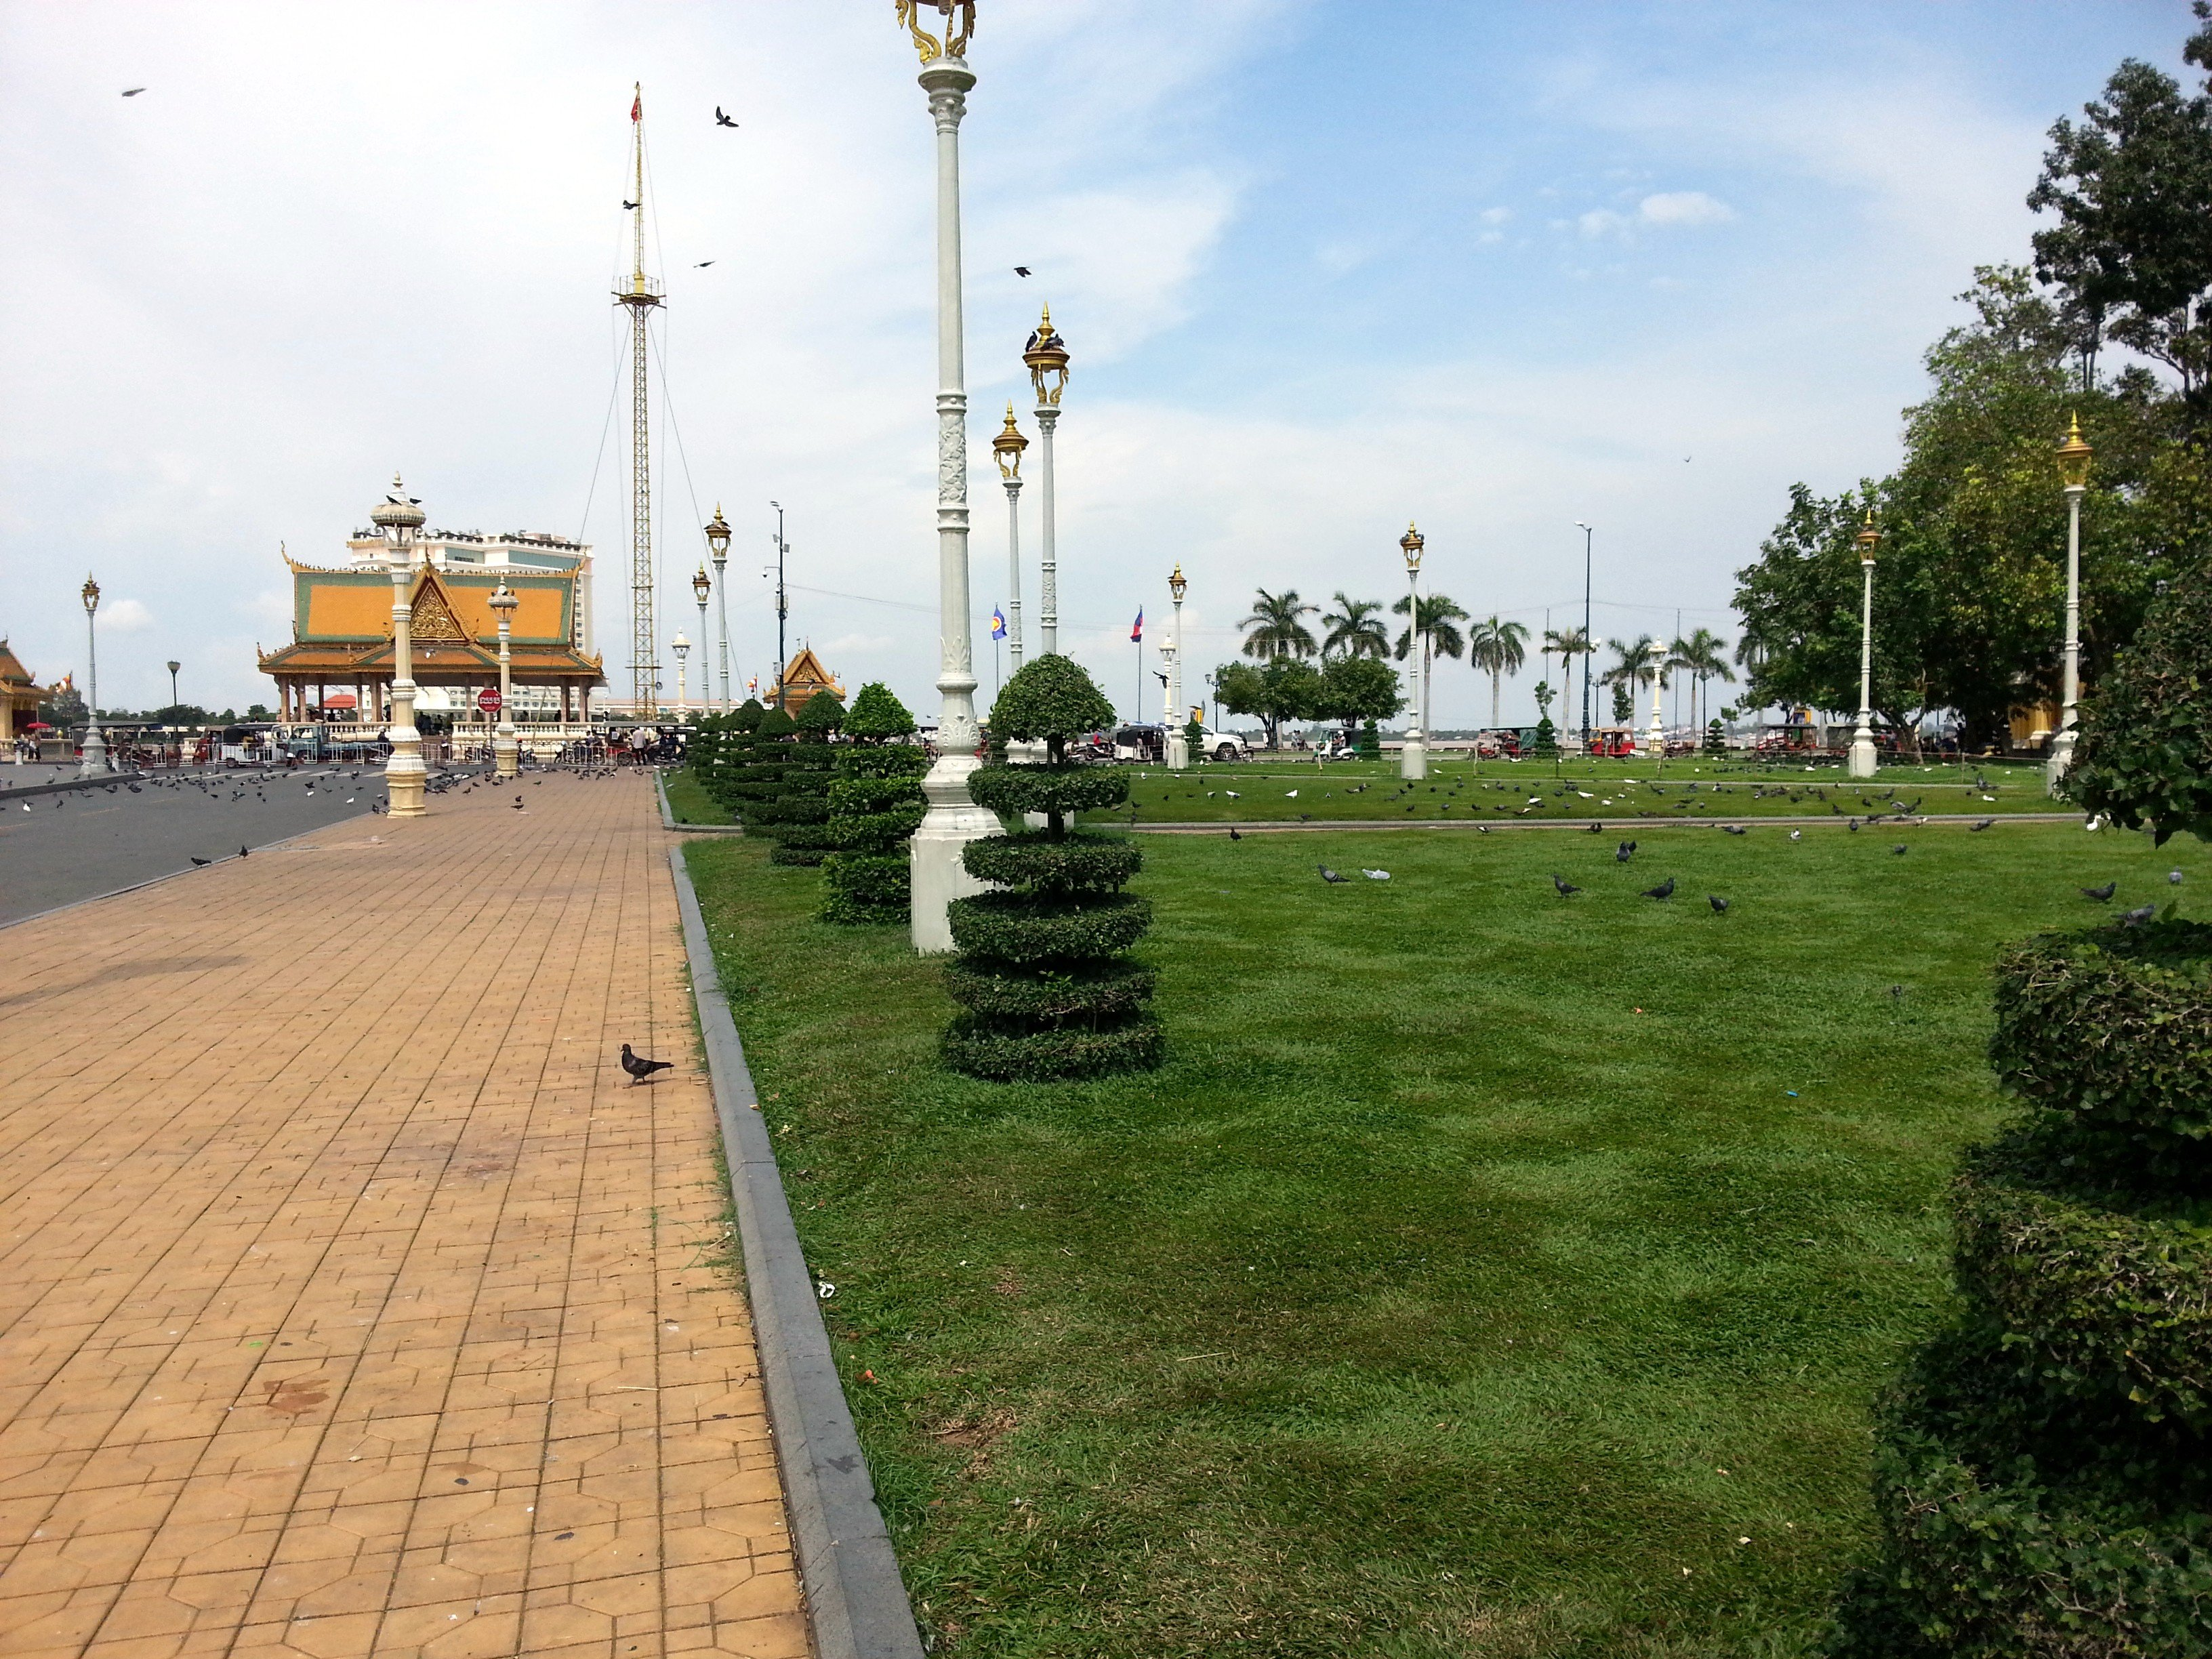 The Royal Palace Park is located by the Tonle Sap River